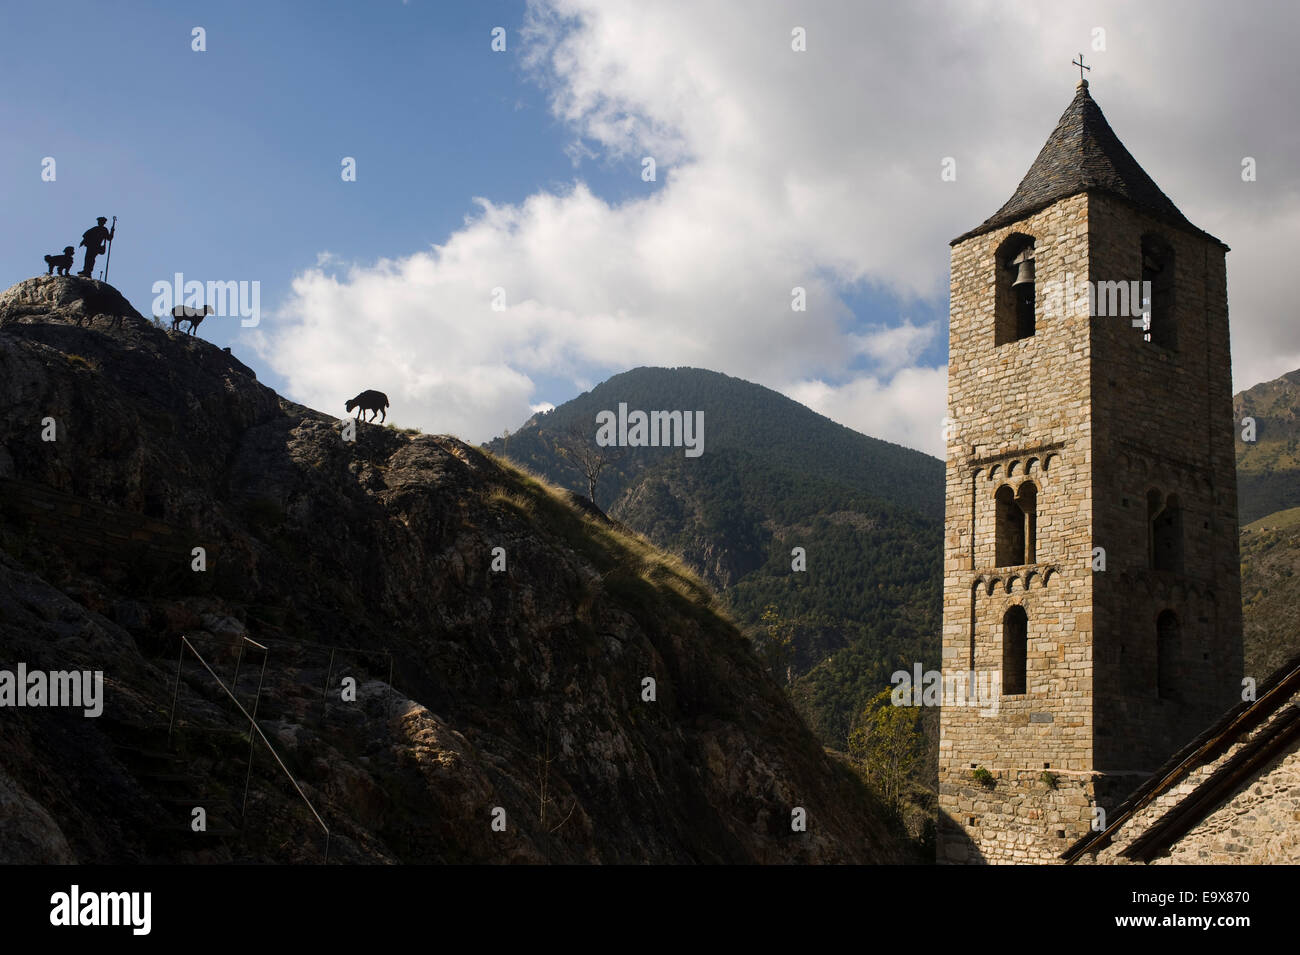 Sant Joan de Boi romanesque church. Vall de Boi, Lleida, Catalonia, Spain. - Stock Image